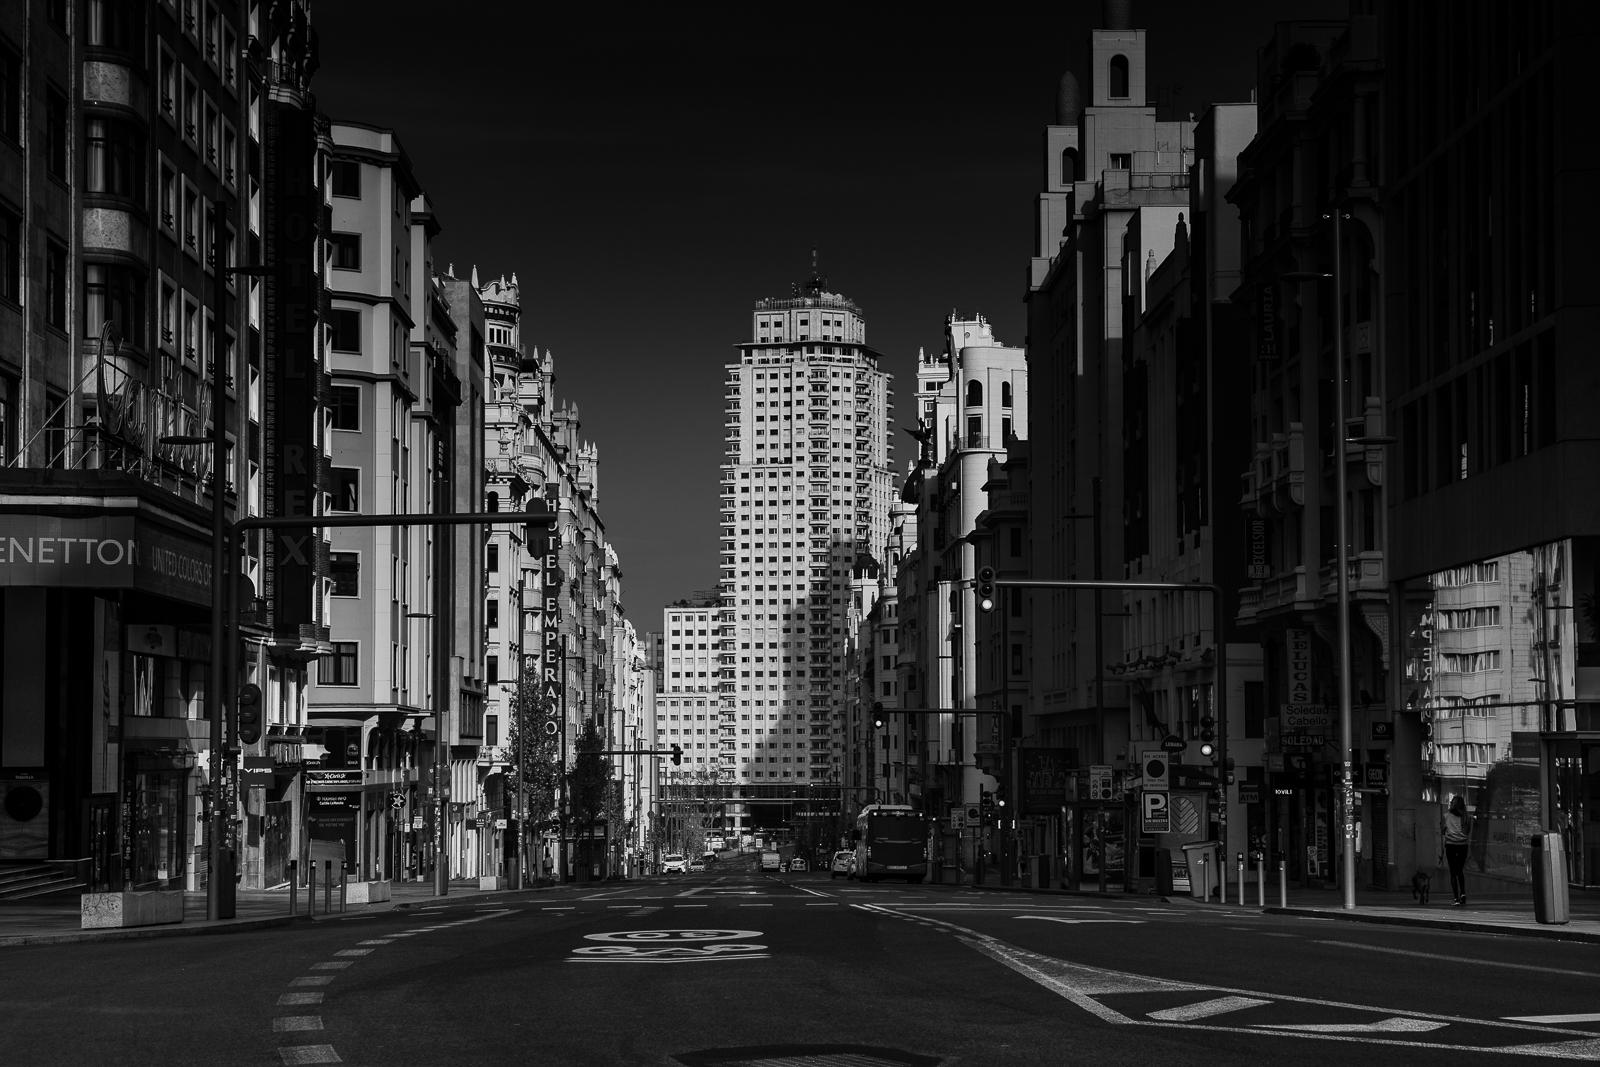 Gran Via Street view, one of the most important avenues of the city center of Madrid during the coronavisrus national lockdown.